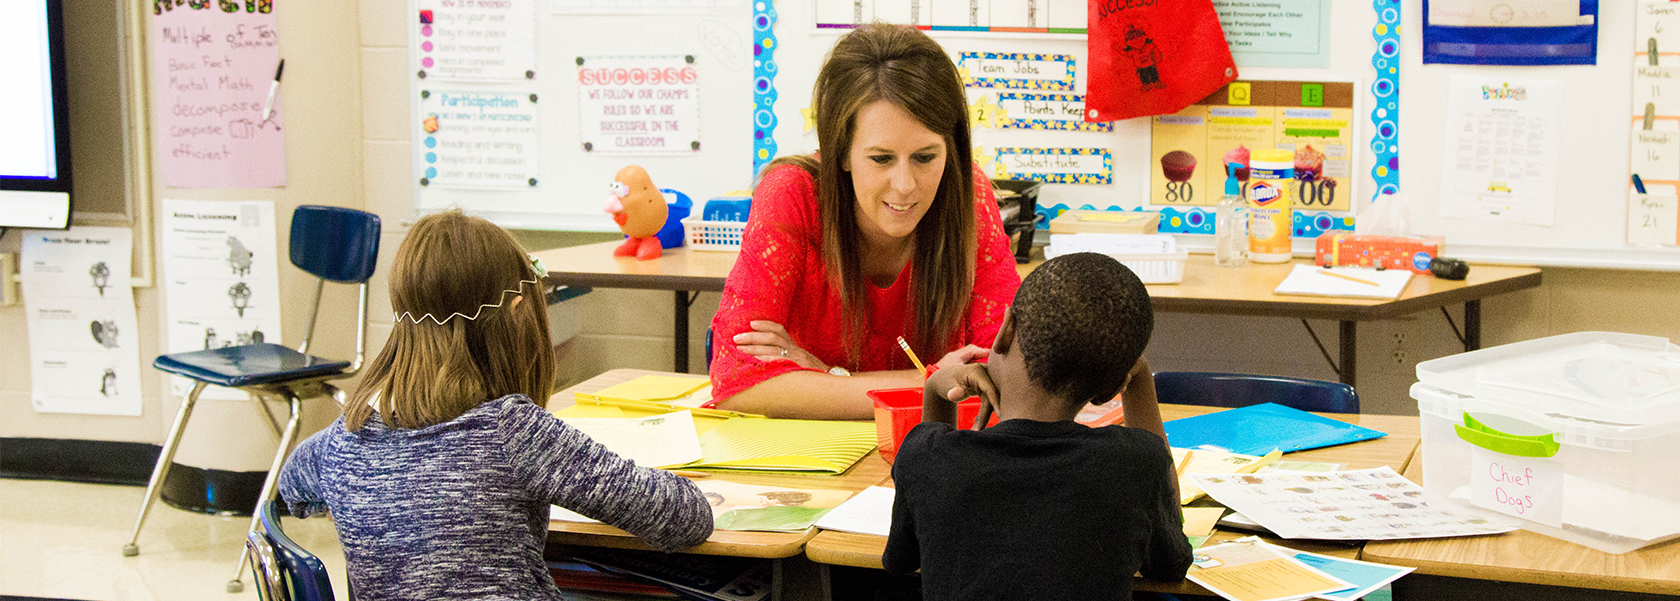 Photo of principal Alicia Scofield working with students in a classroom.